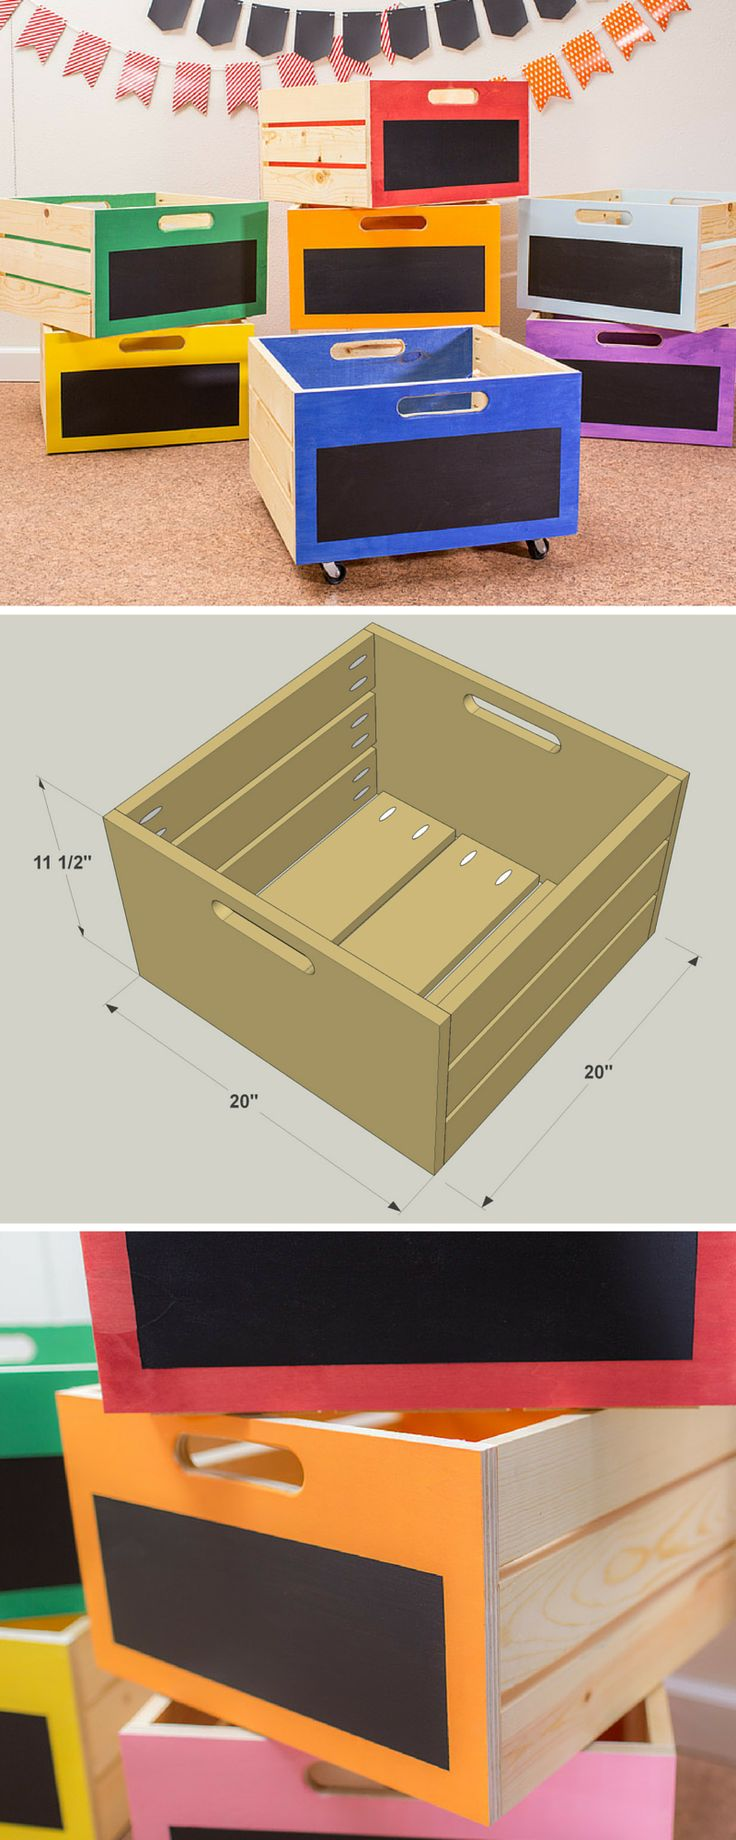 These storage crates are perfect for storing just about anything. They're sturdy and simple to build. Plus, you can customize them with chalkboard panels to mark what's inside, and even add a splash of color for a bit of style. You can even add casters if you want to create rolling storage. Get the free DIY plans at buildsomething.com